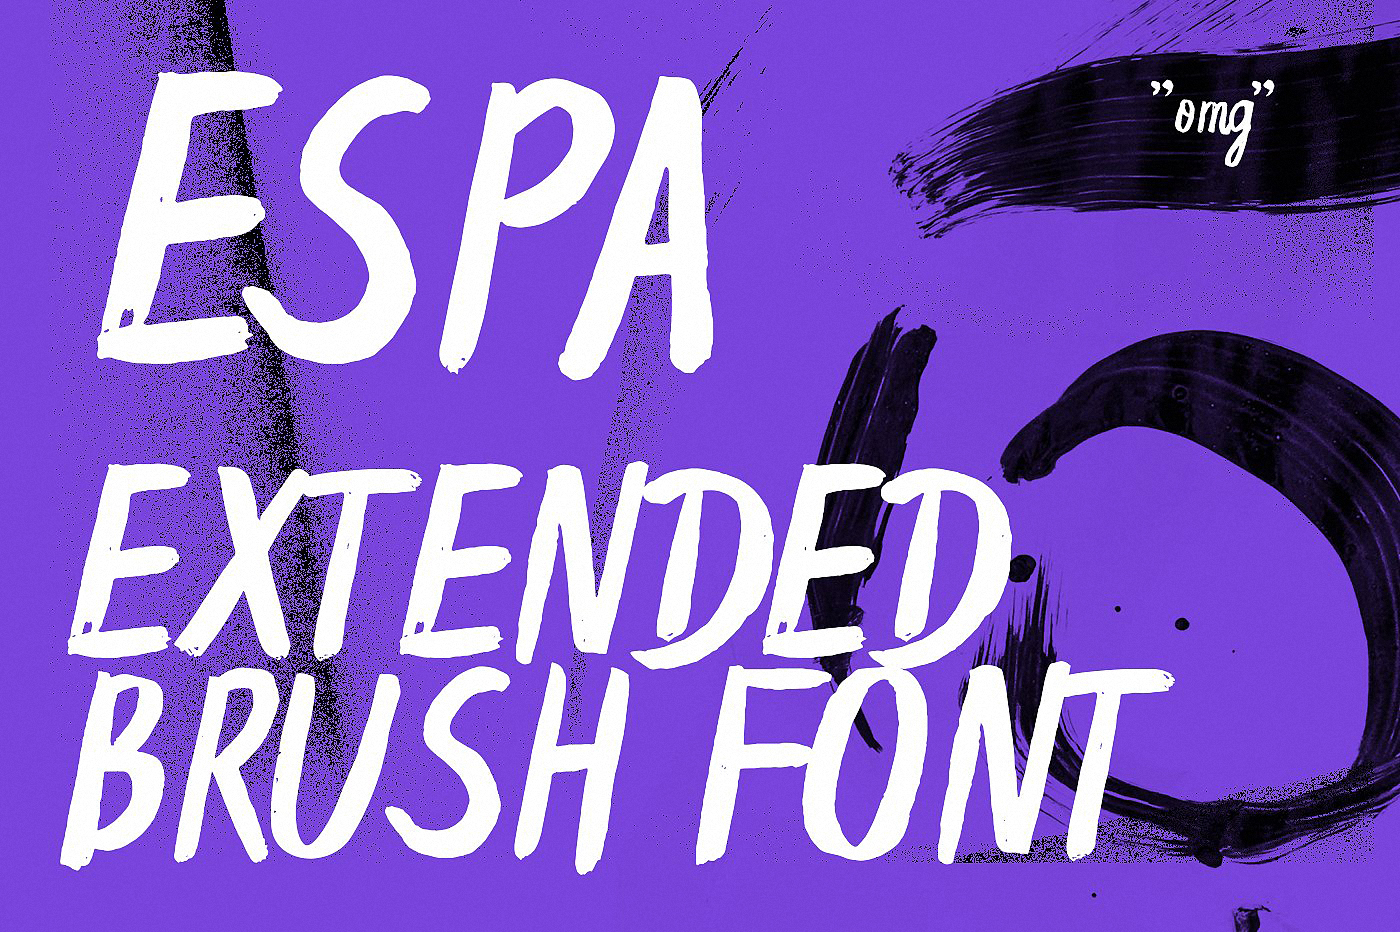 Espa Extended